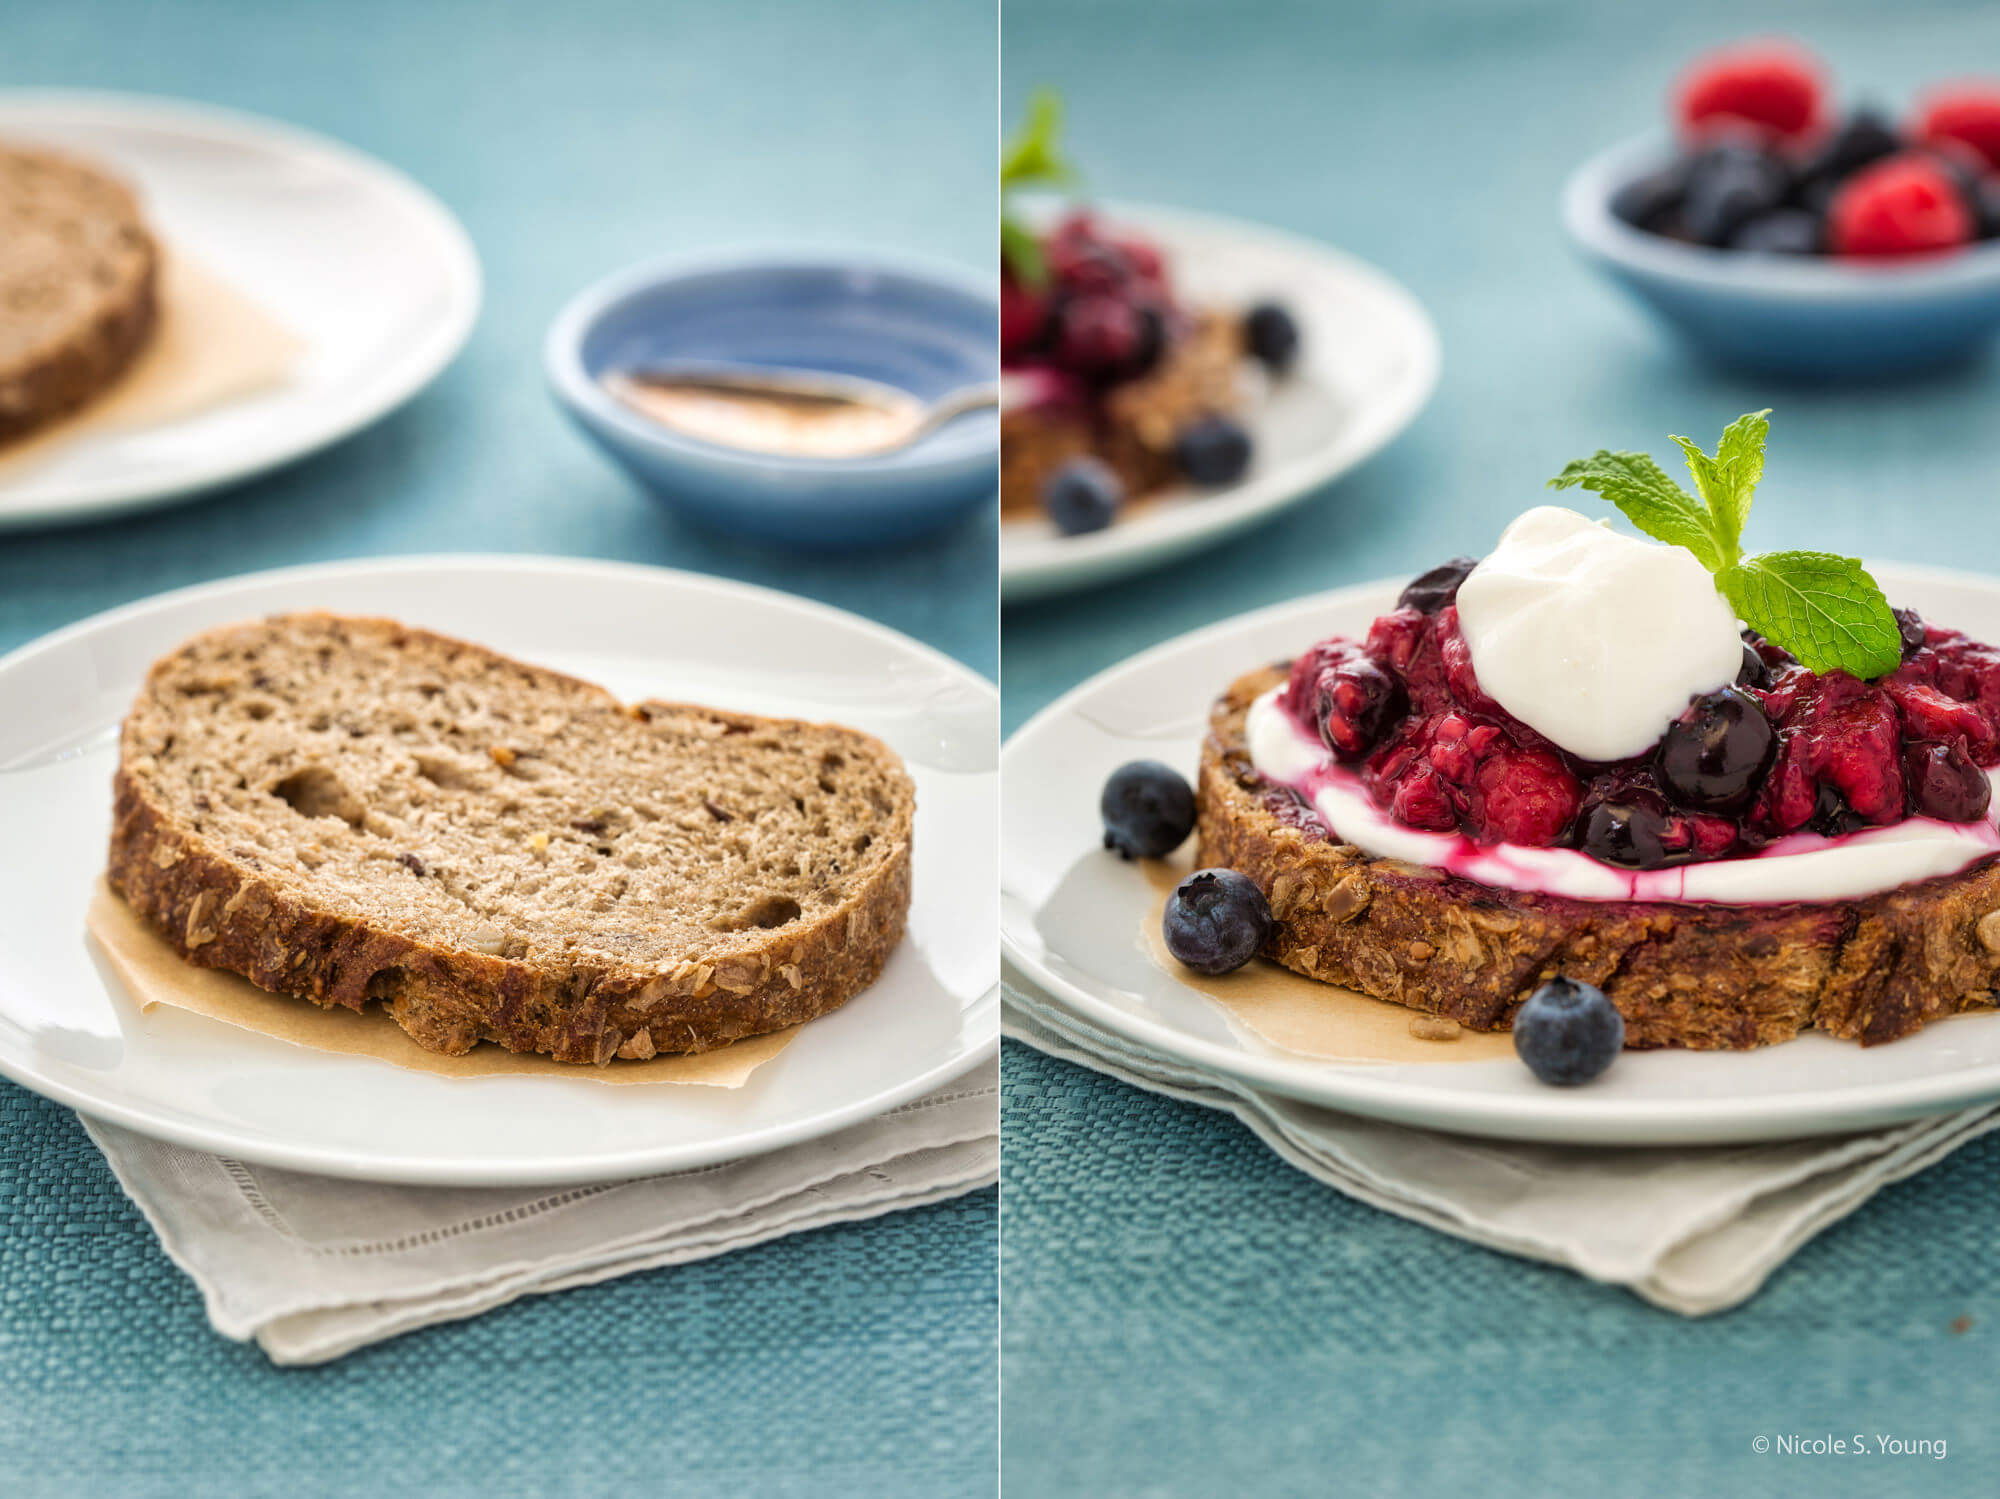 food photography tips for two dishes side by side